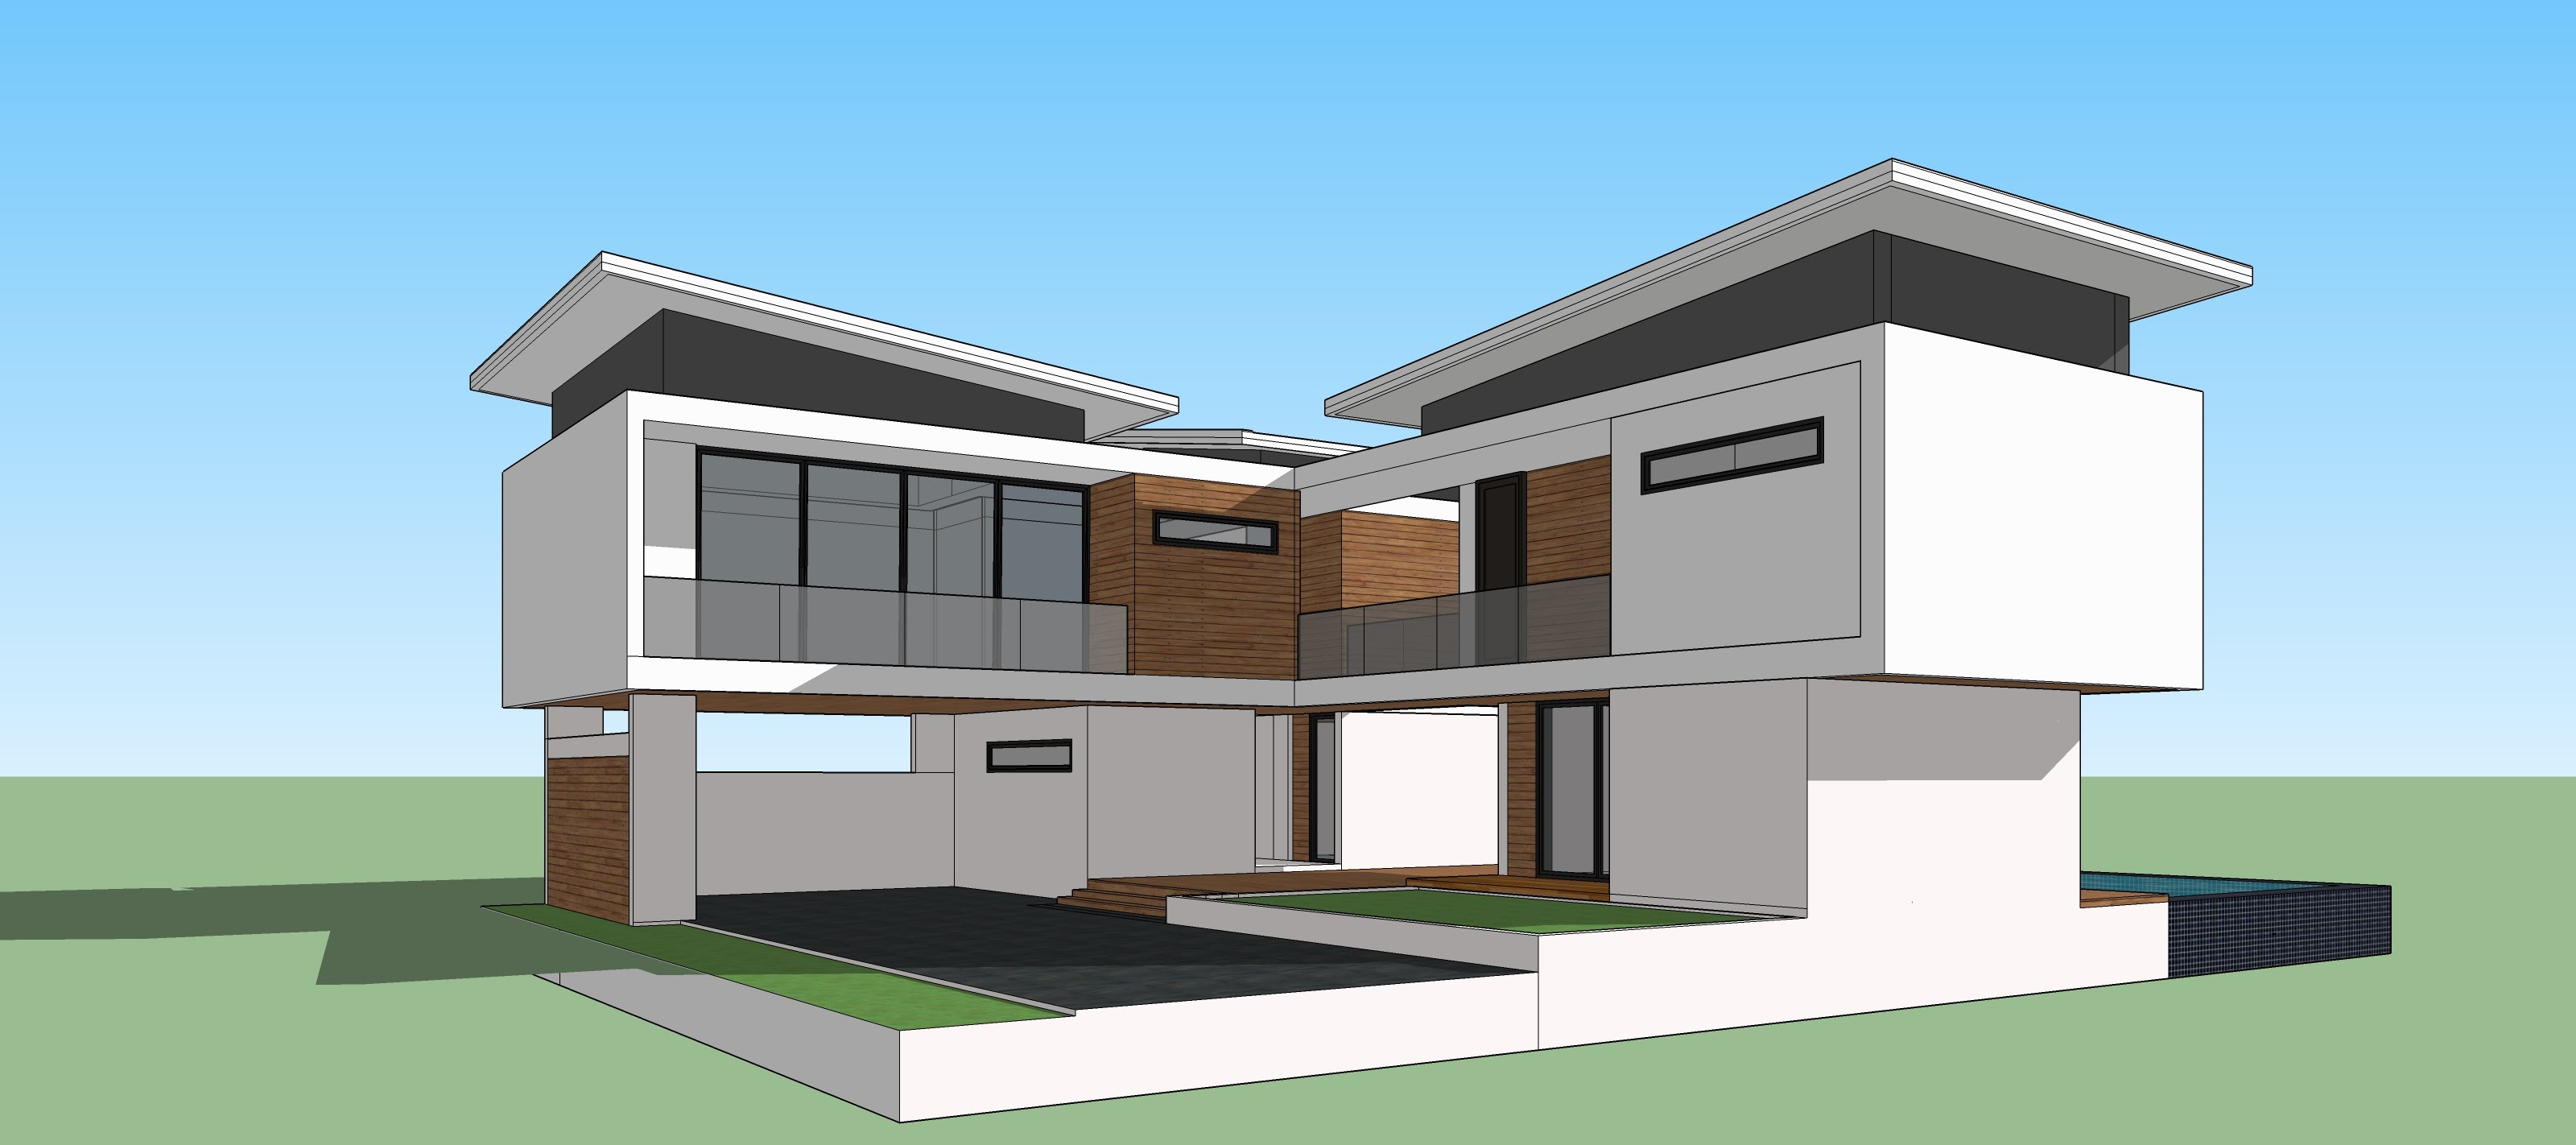 Sketchup file extensions for Simple home model